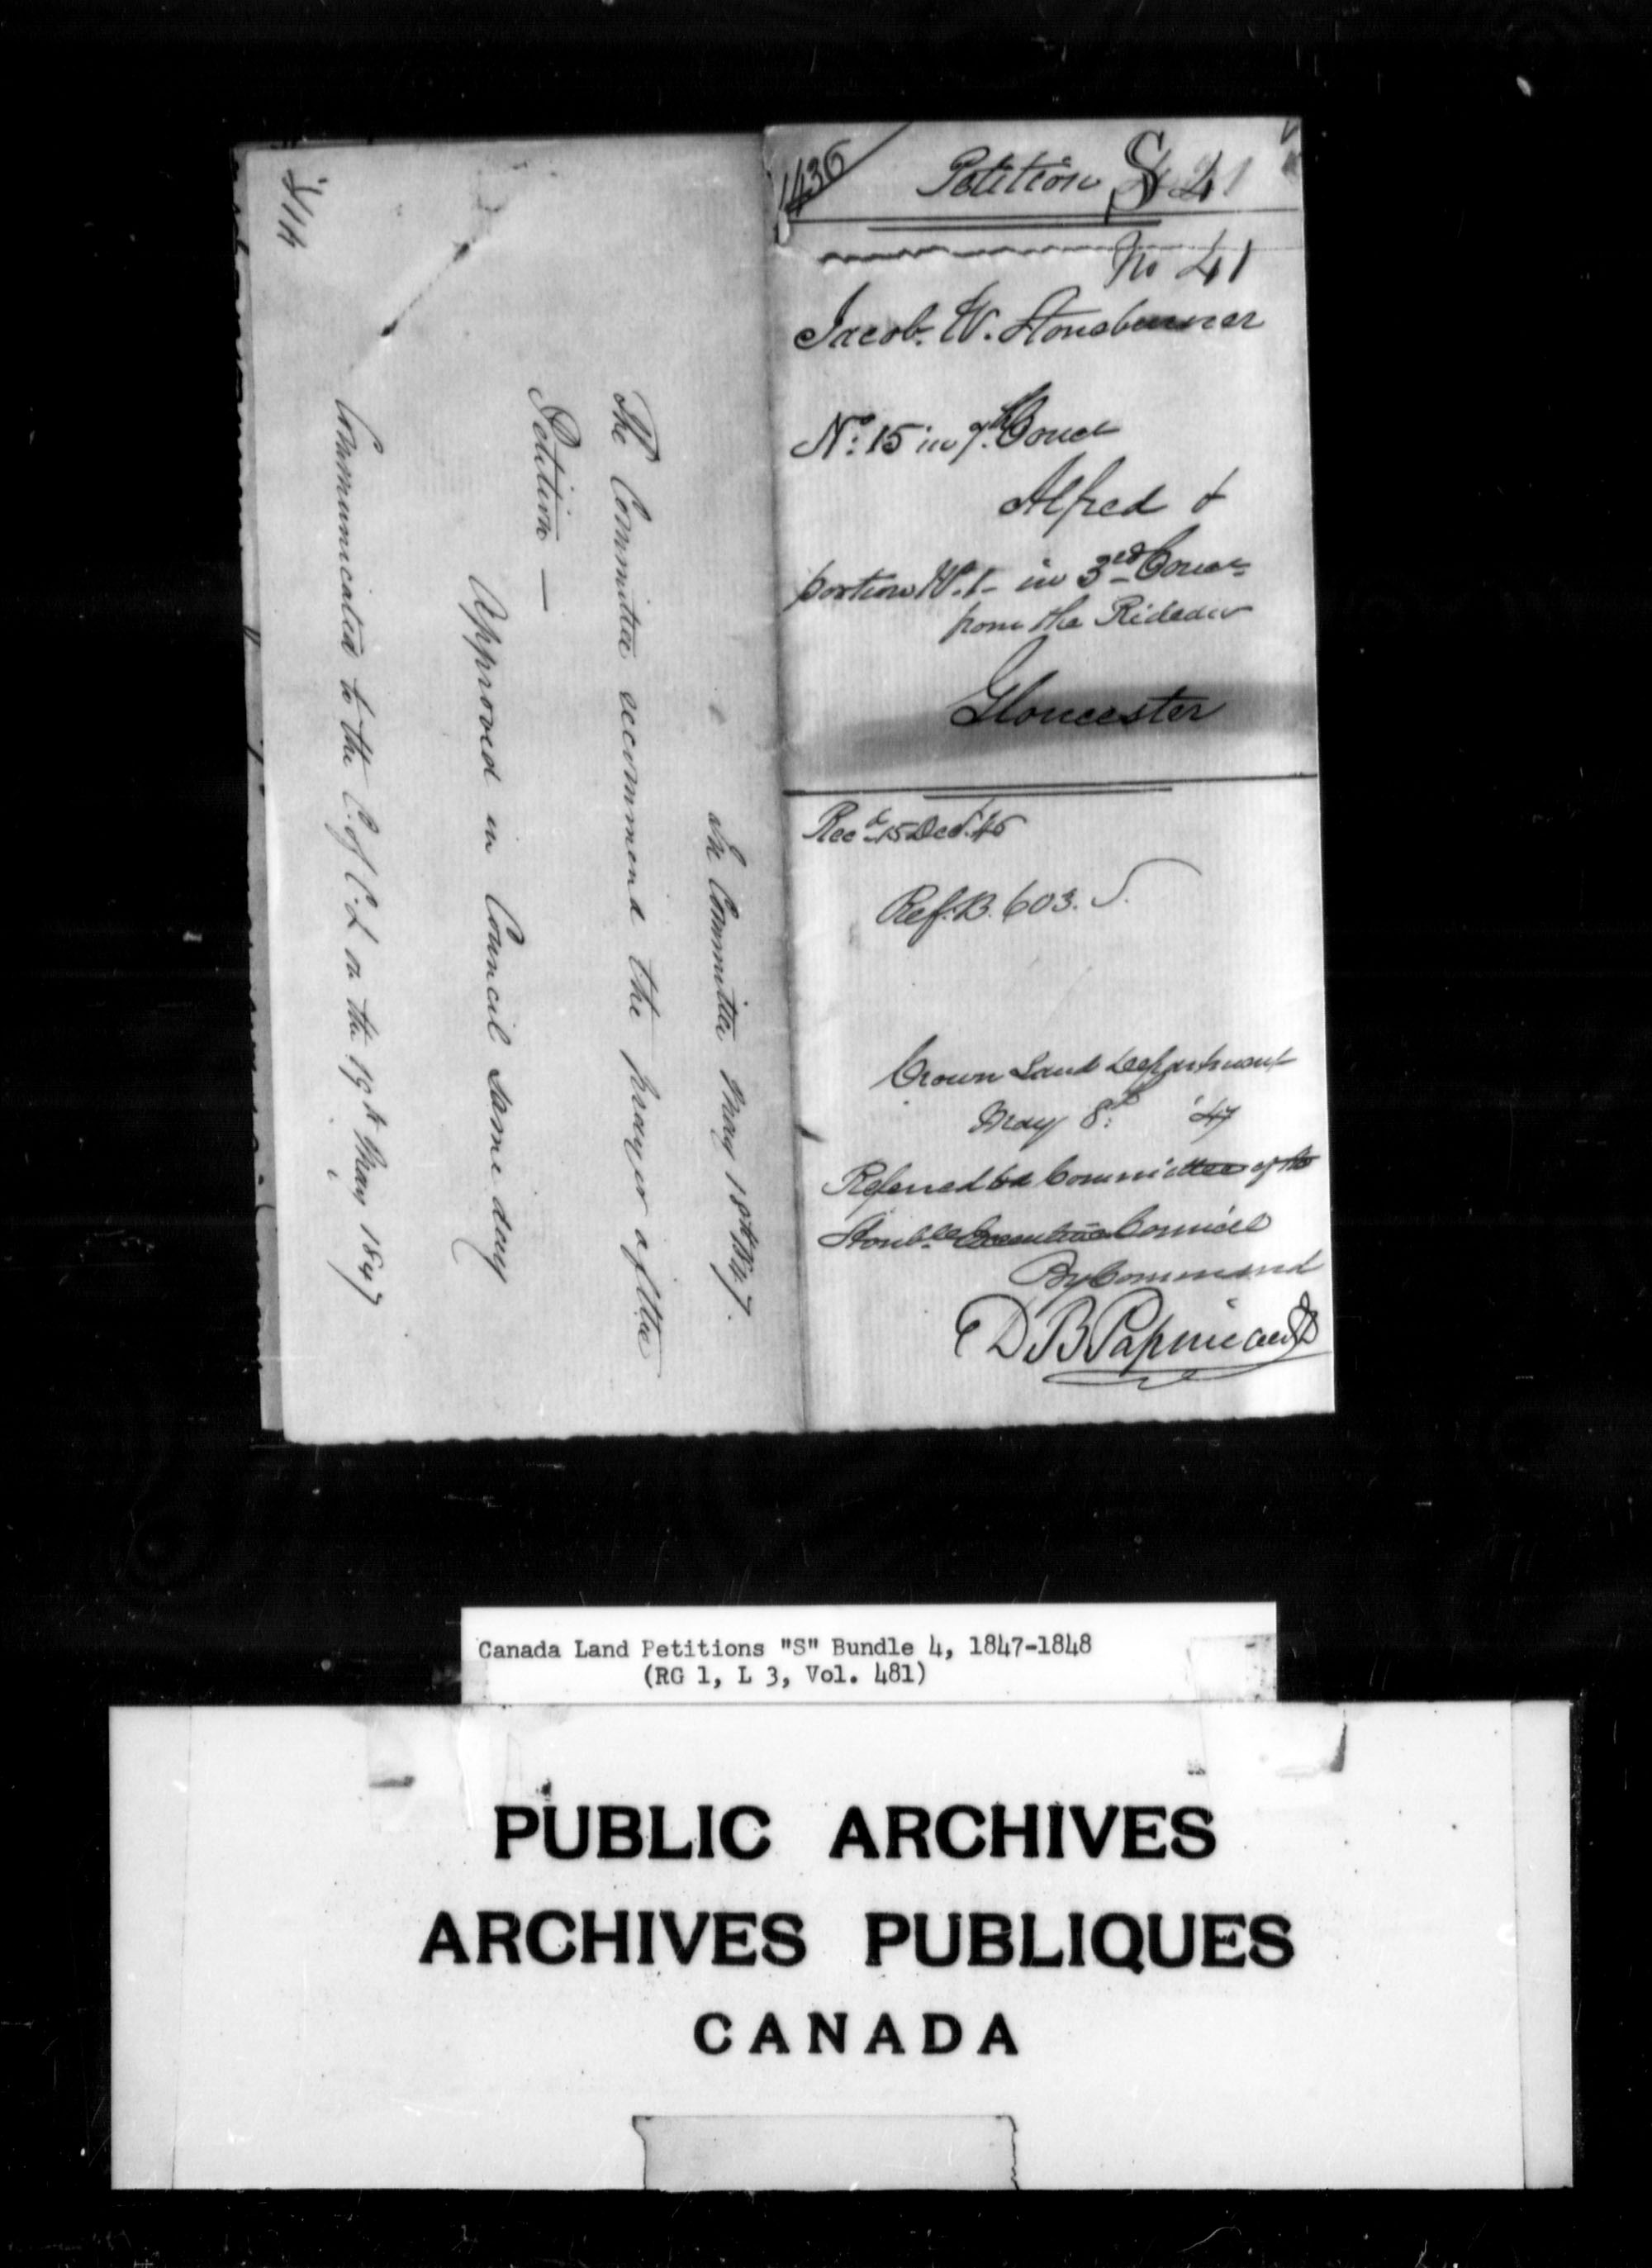 Title: Upper Canada Land Petitions (1763-1865) - Mikan Number: 205131 - Microform: c-2824